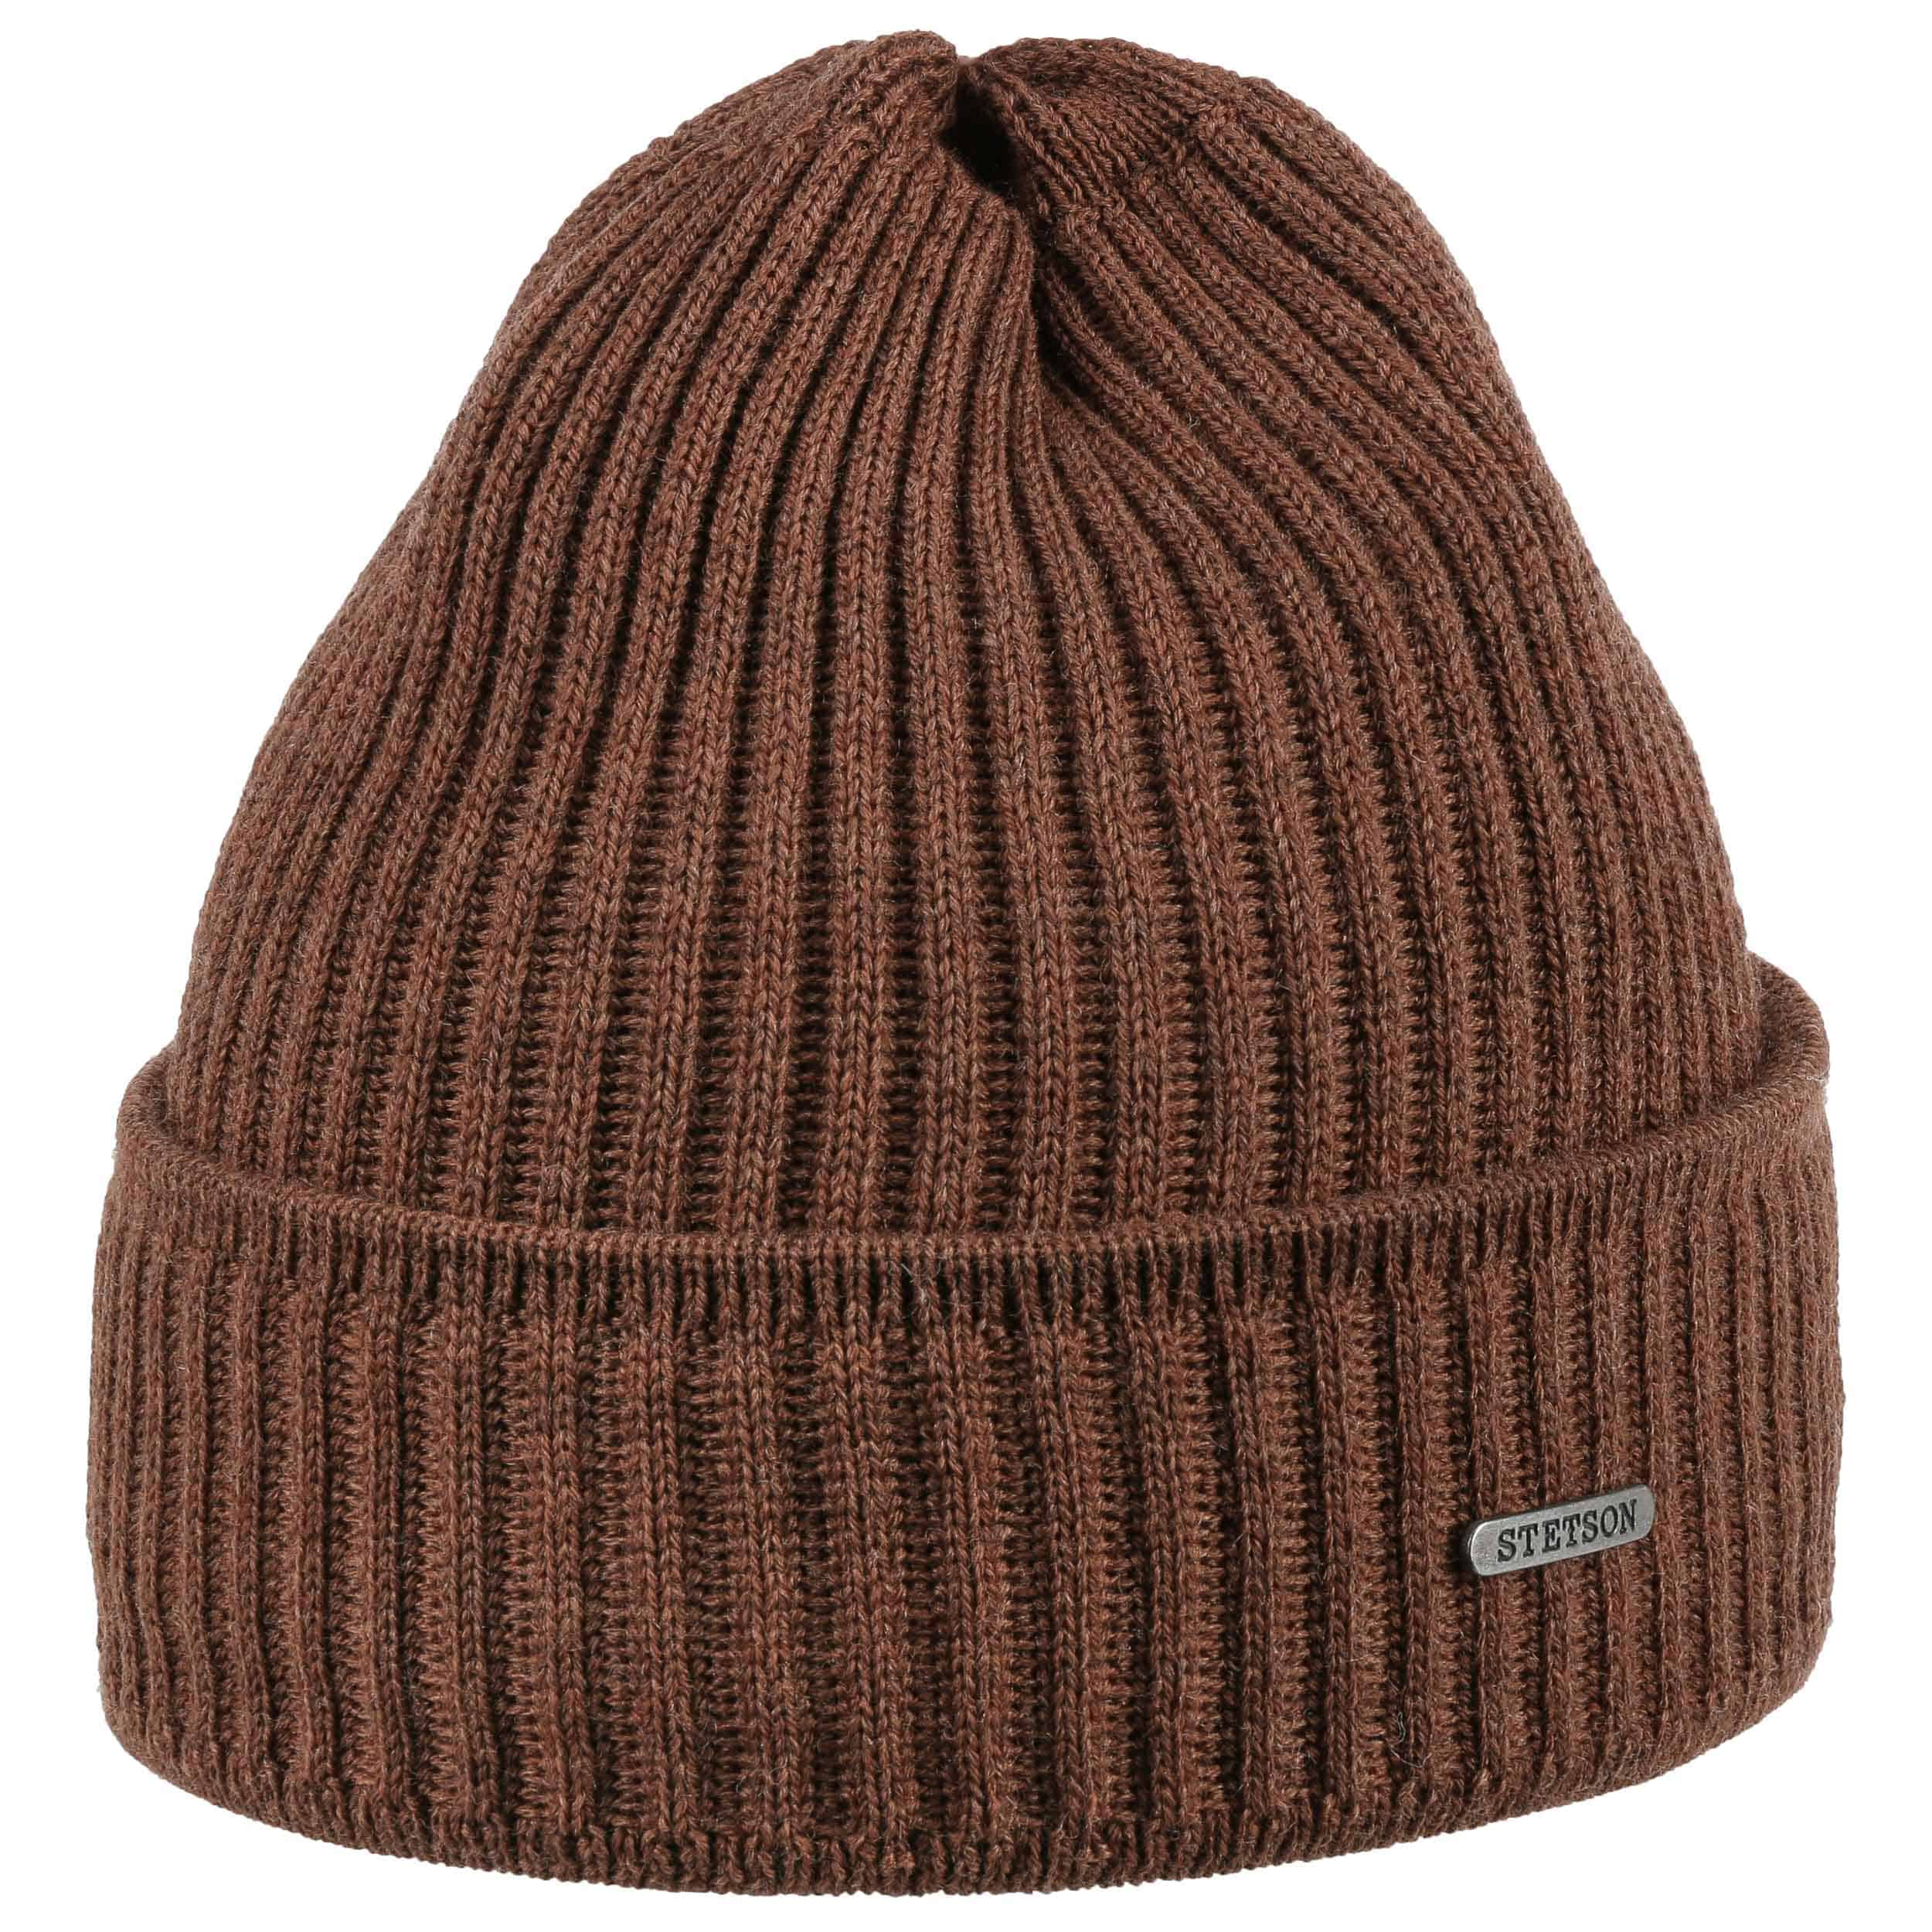 ... Parkman Knit Hat by Stetson - blue 1 ... 91fd8f2a9ae6